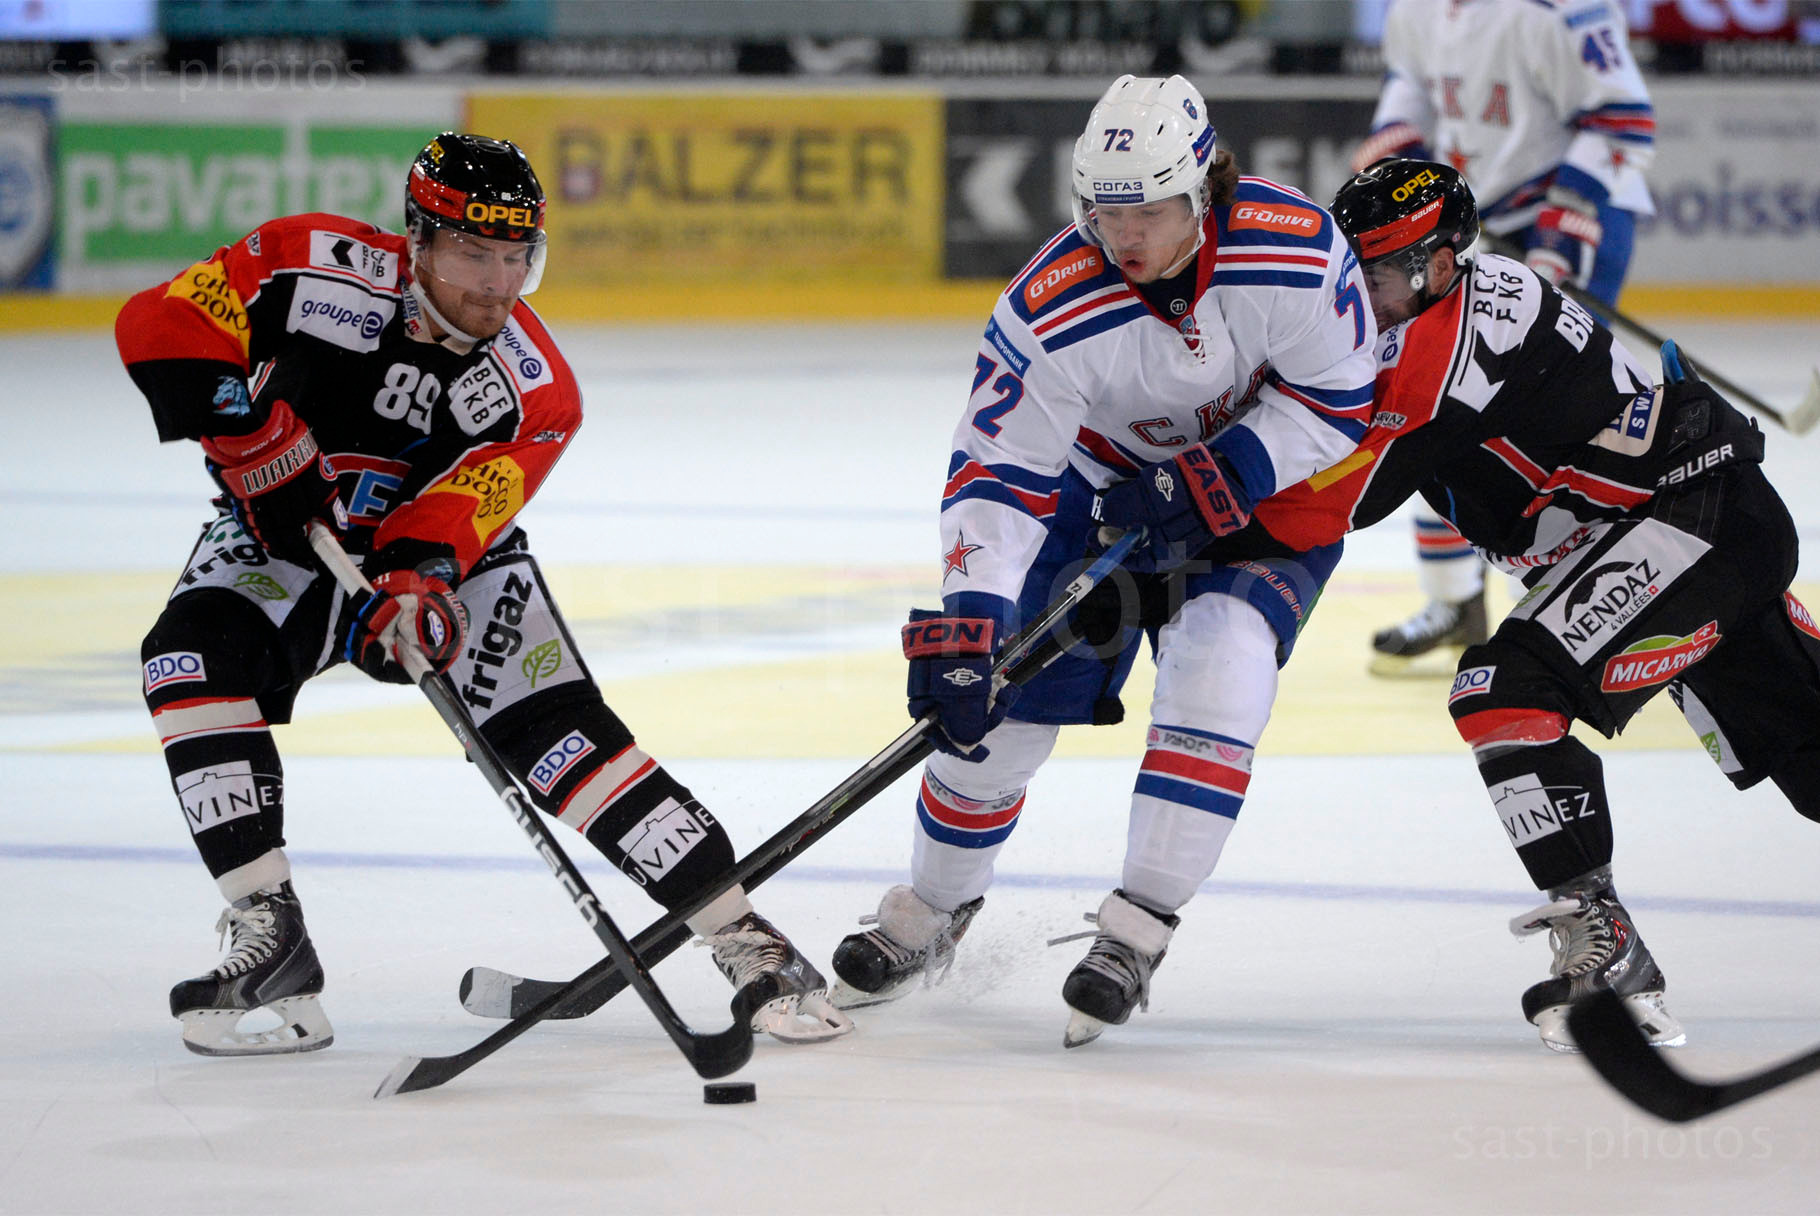 v.l.n.r. Andrei Bykov (Fribourg) Artemy Panarin (St. Petersburg) Sandro Bruegger (Fribourg)